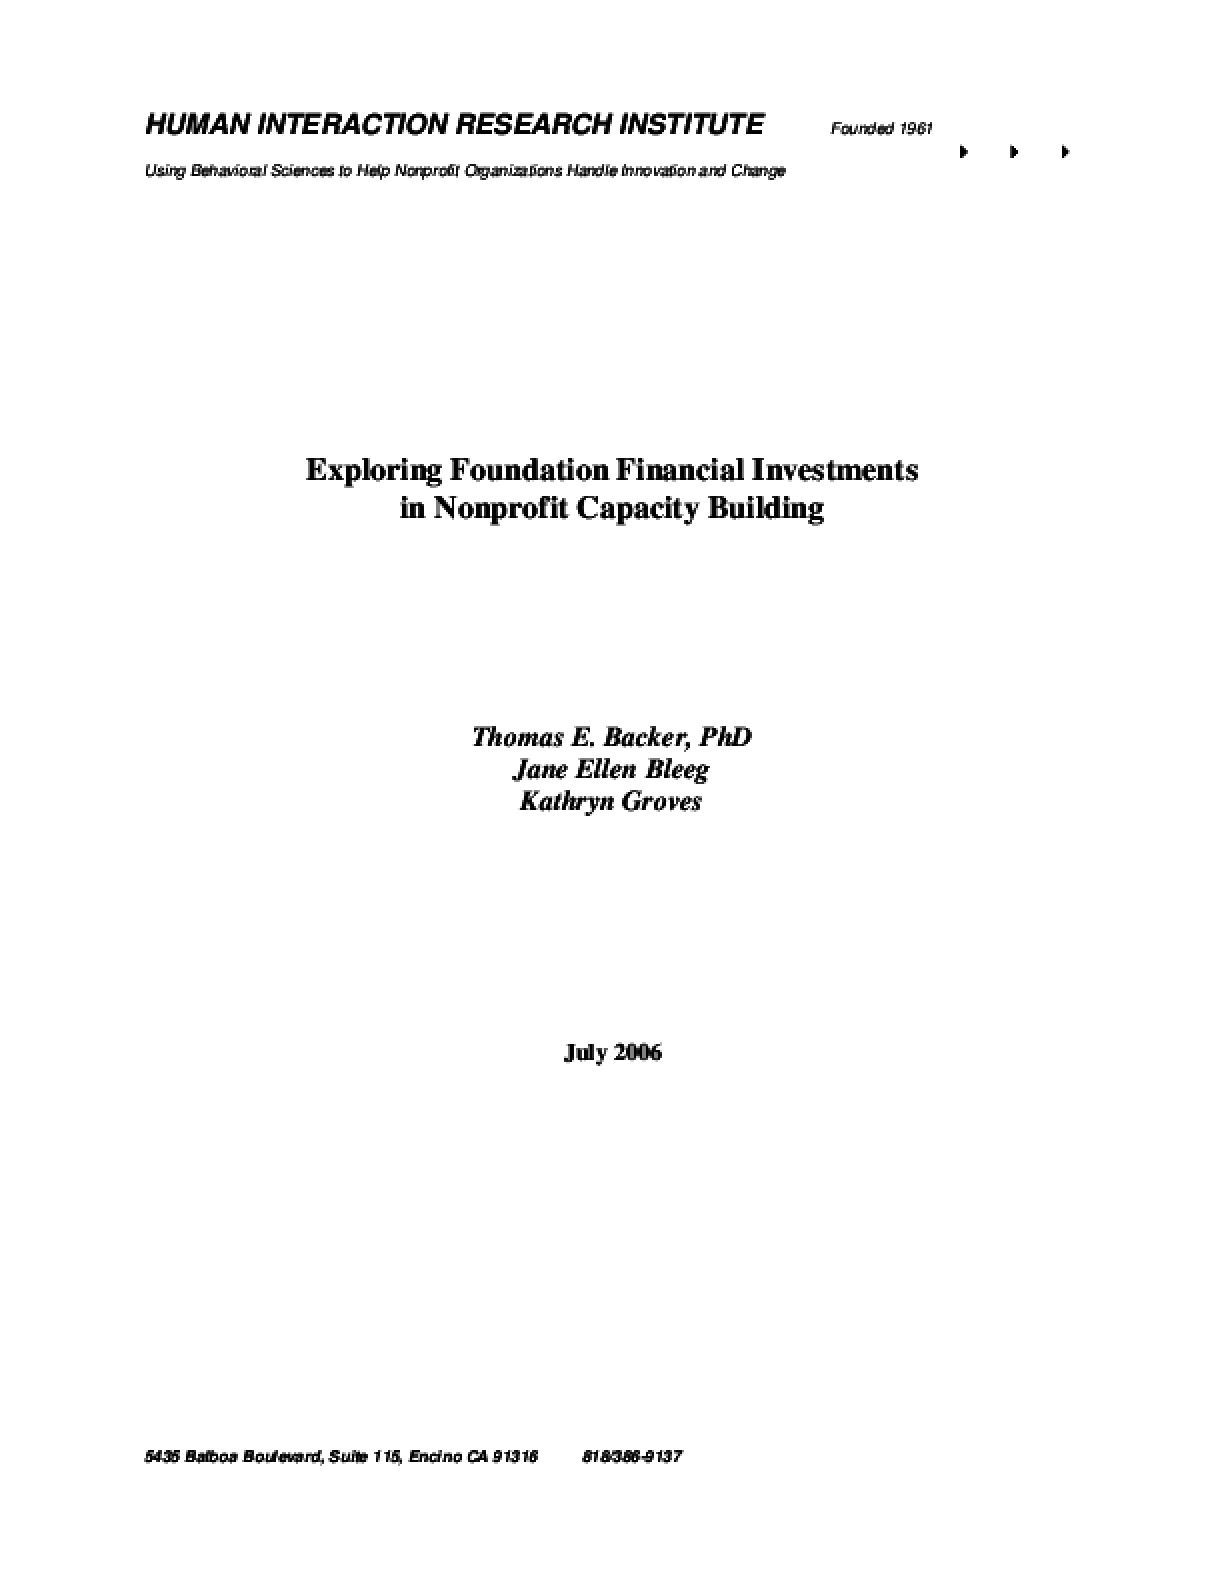 Exploring Foundation Financial Investments in Nonprofit Capacity Building